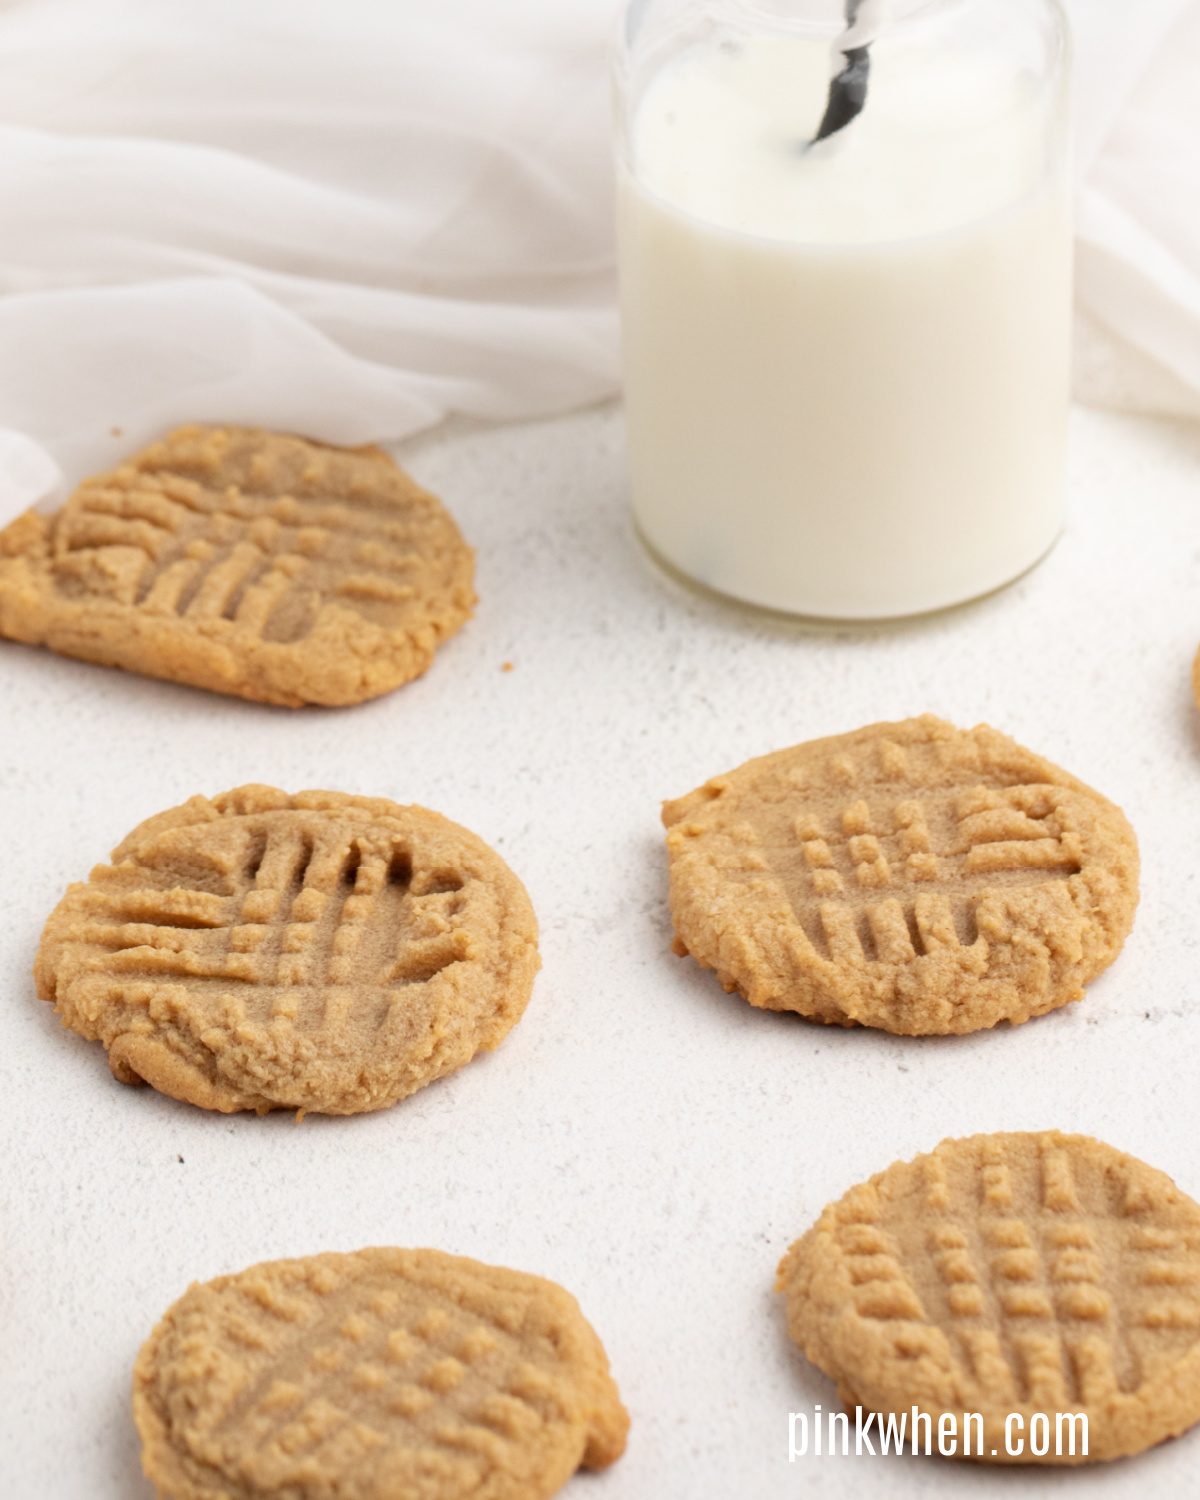 Peanut butter cookies laid out on a table with a glass of milk.